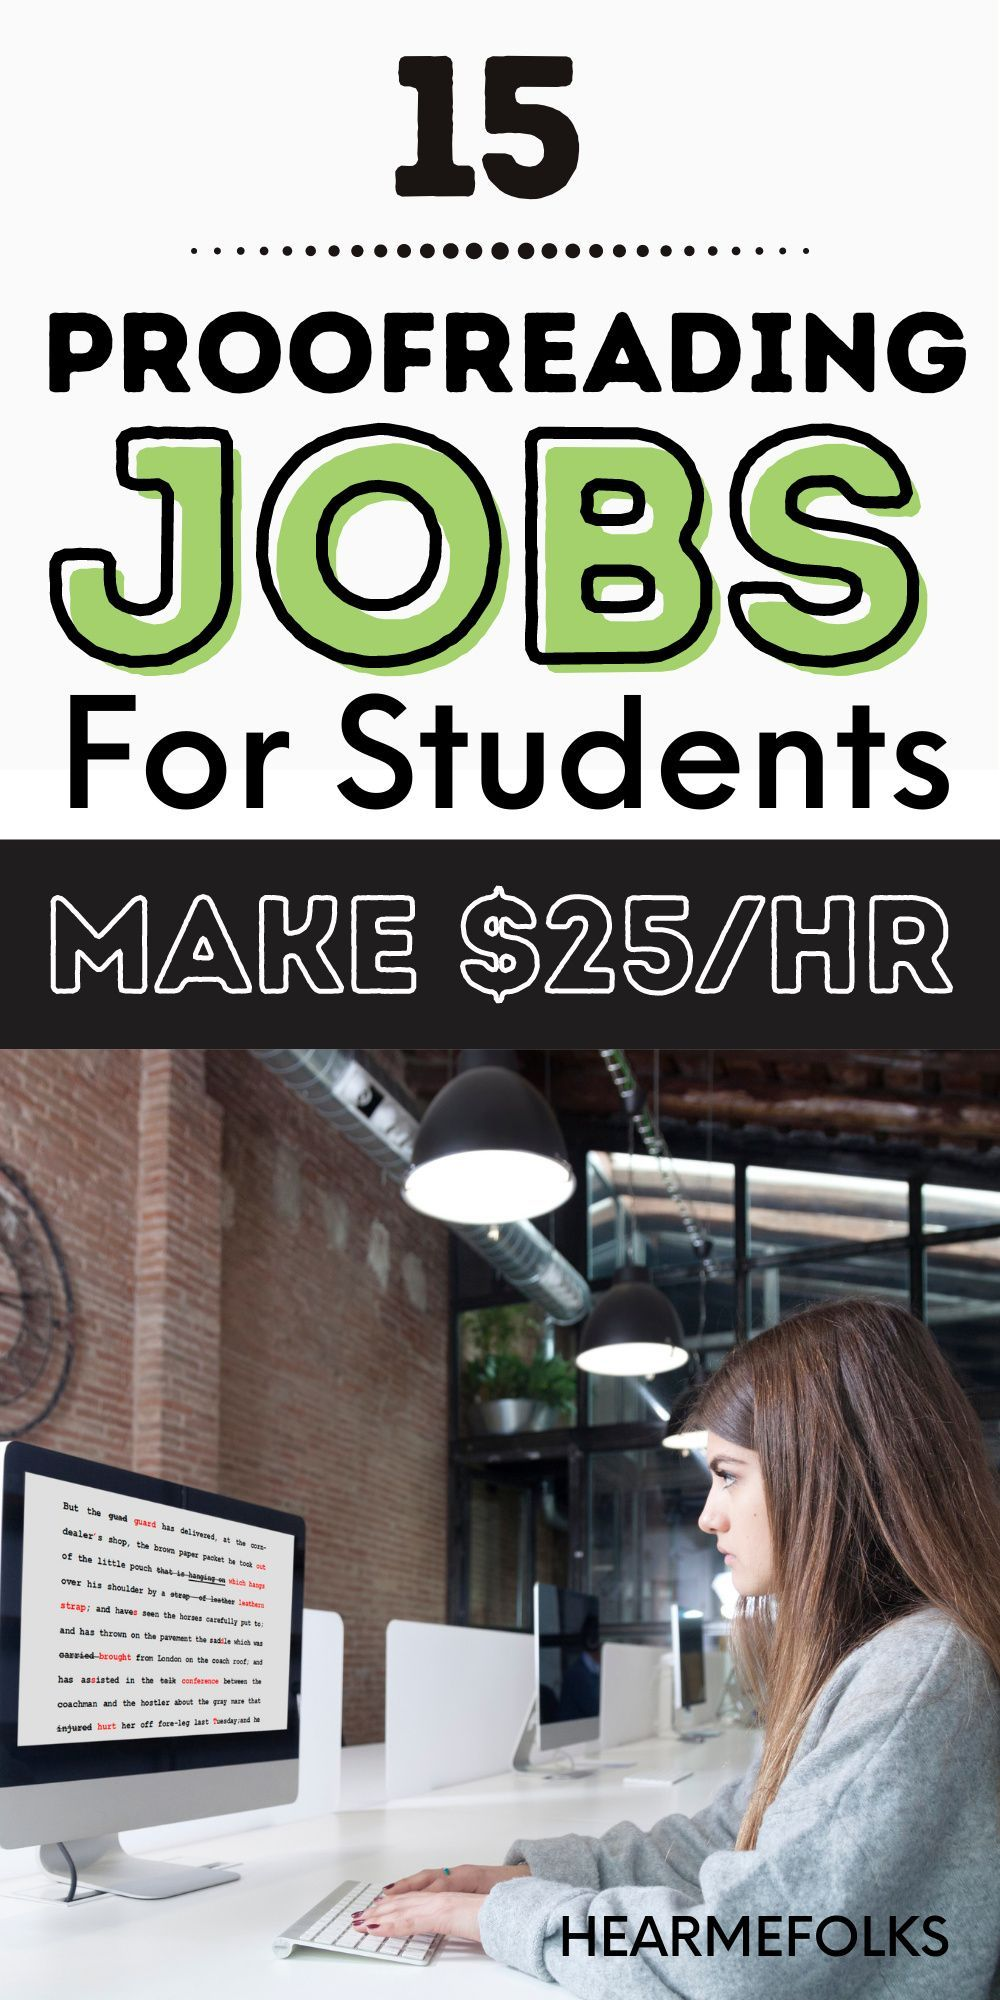 1c90d428198165fa79000446efd2464f - 15 Proofreading Jobs for College Students [Up to $25/hr] - work-from-home